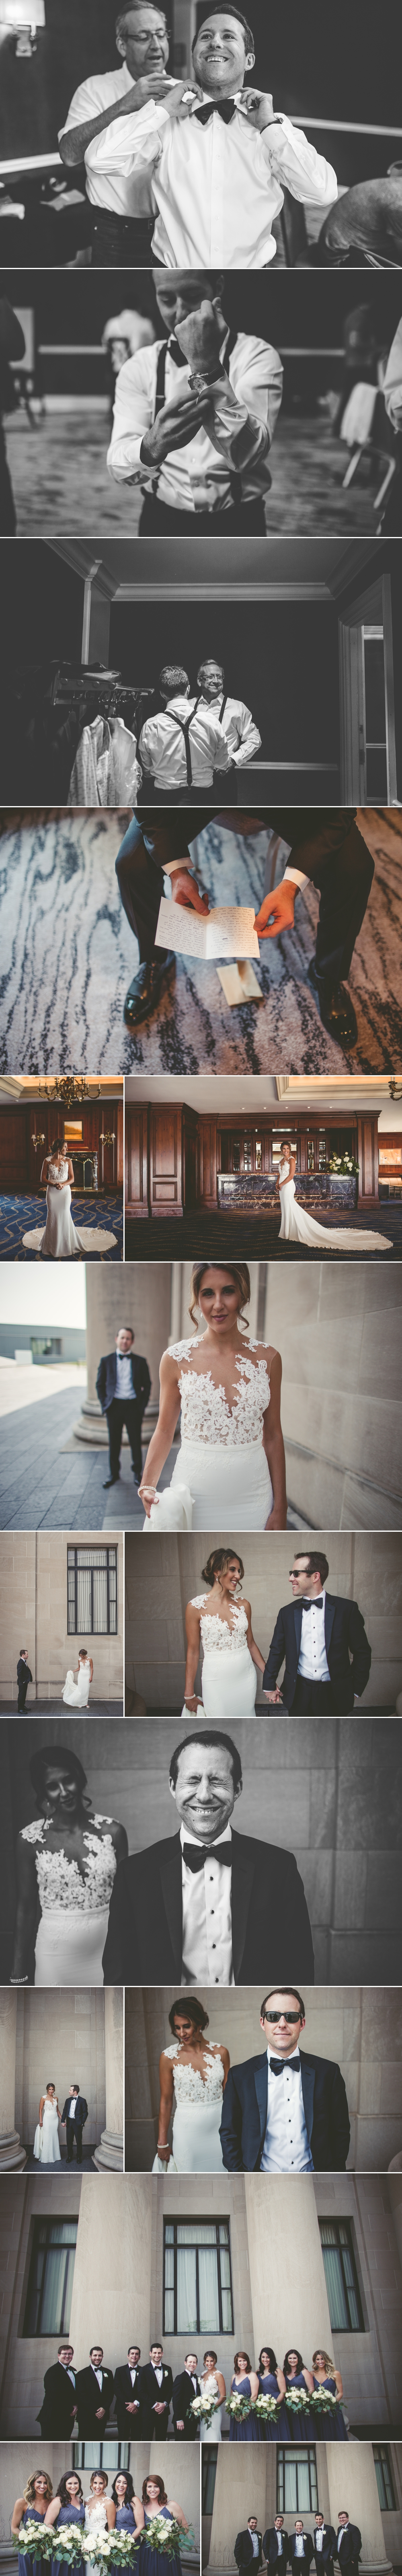 jason_domingues_photography_best_kansas_city_wedding_photographer_jewish_intercontinental_hotel_0002.JPG